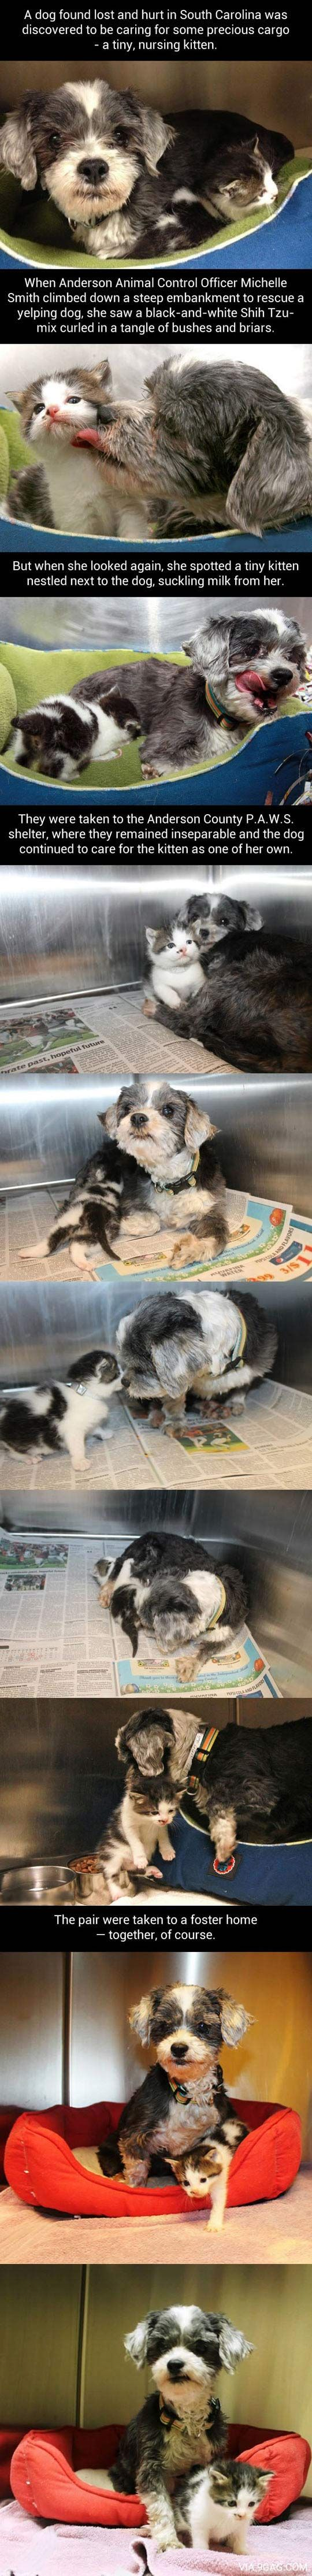 Lost dog finds little kitten and saves her�